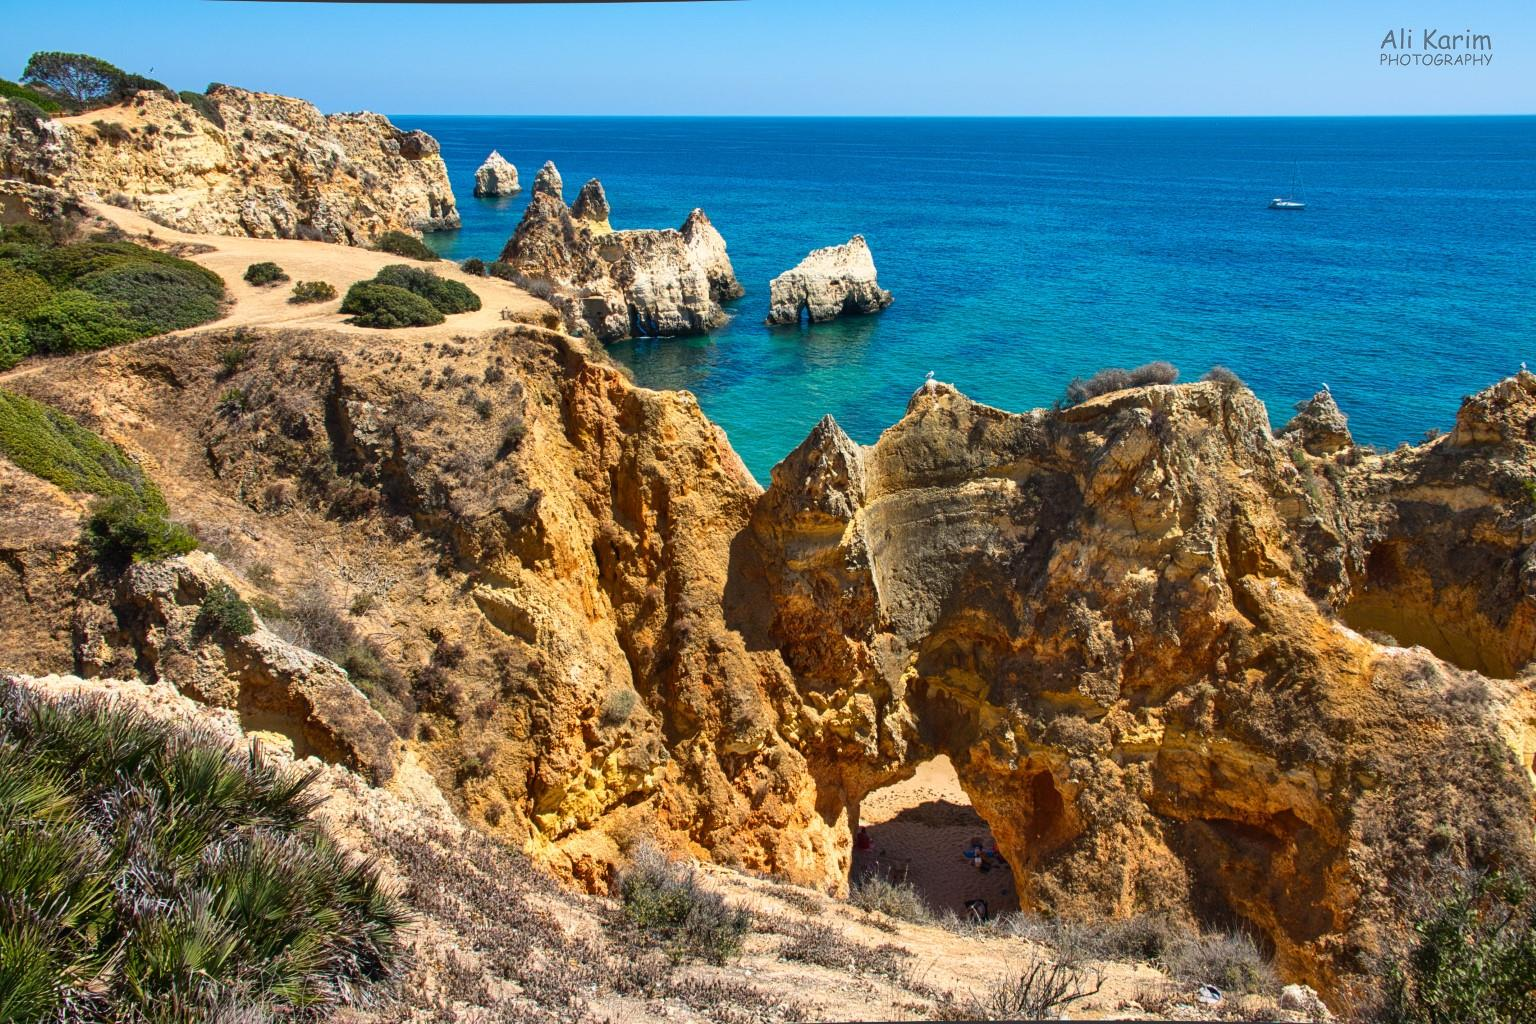 Algarve, Portugal Beautiful coastline scenery